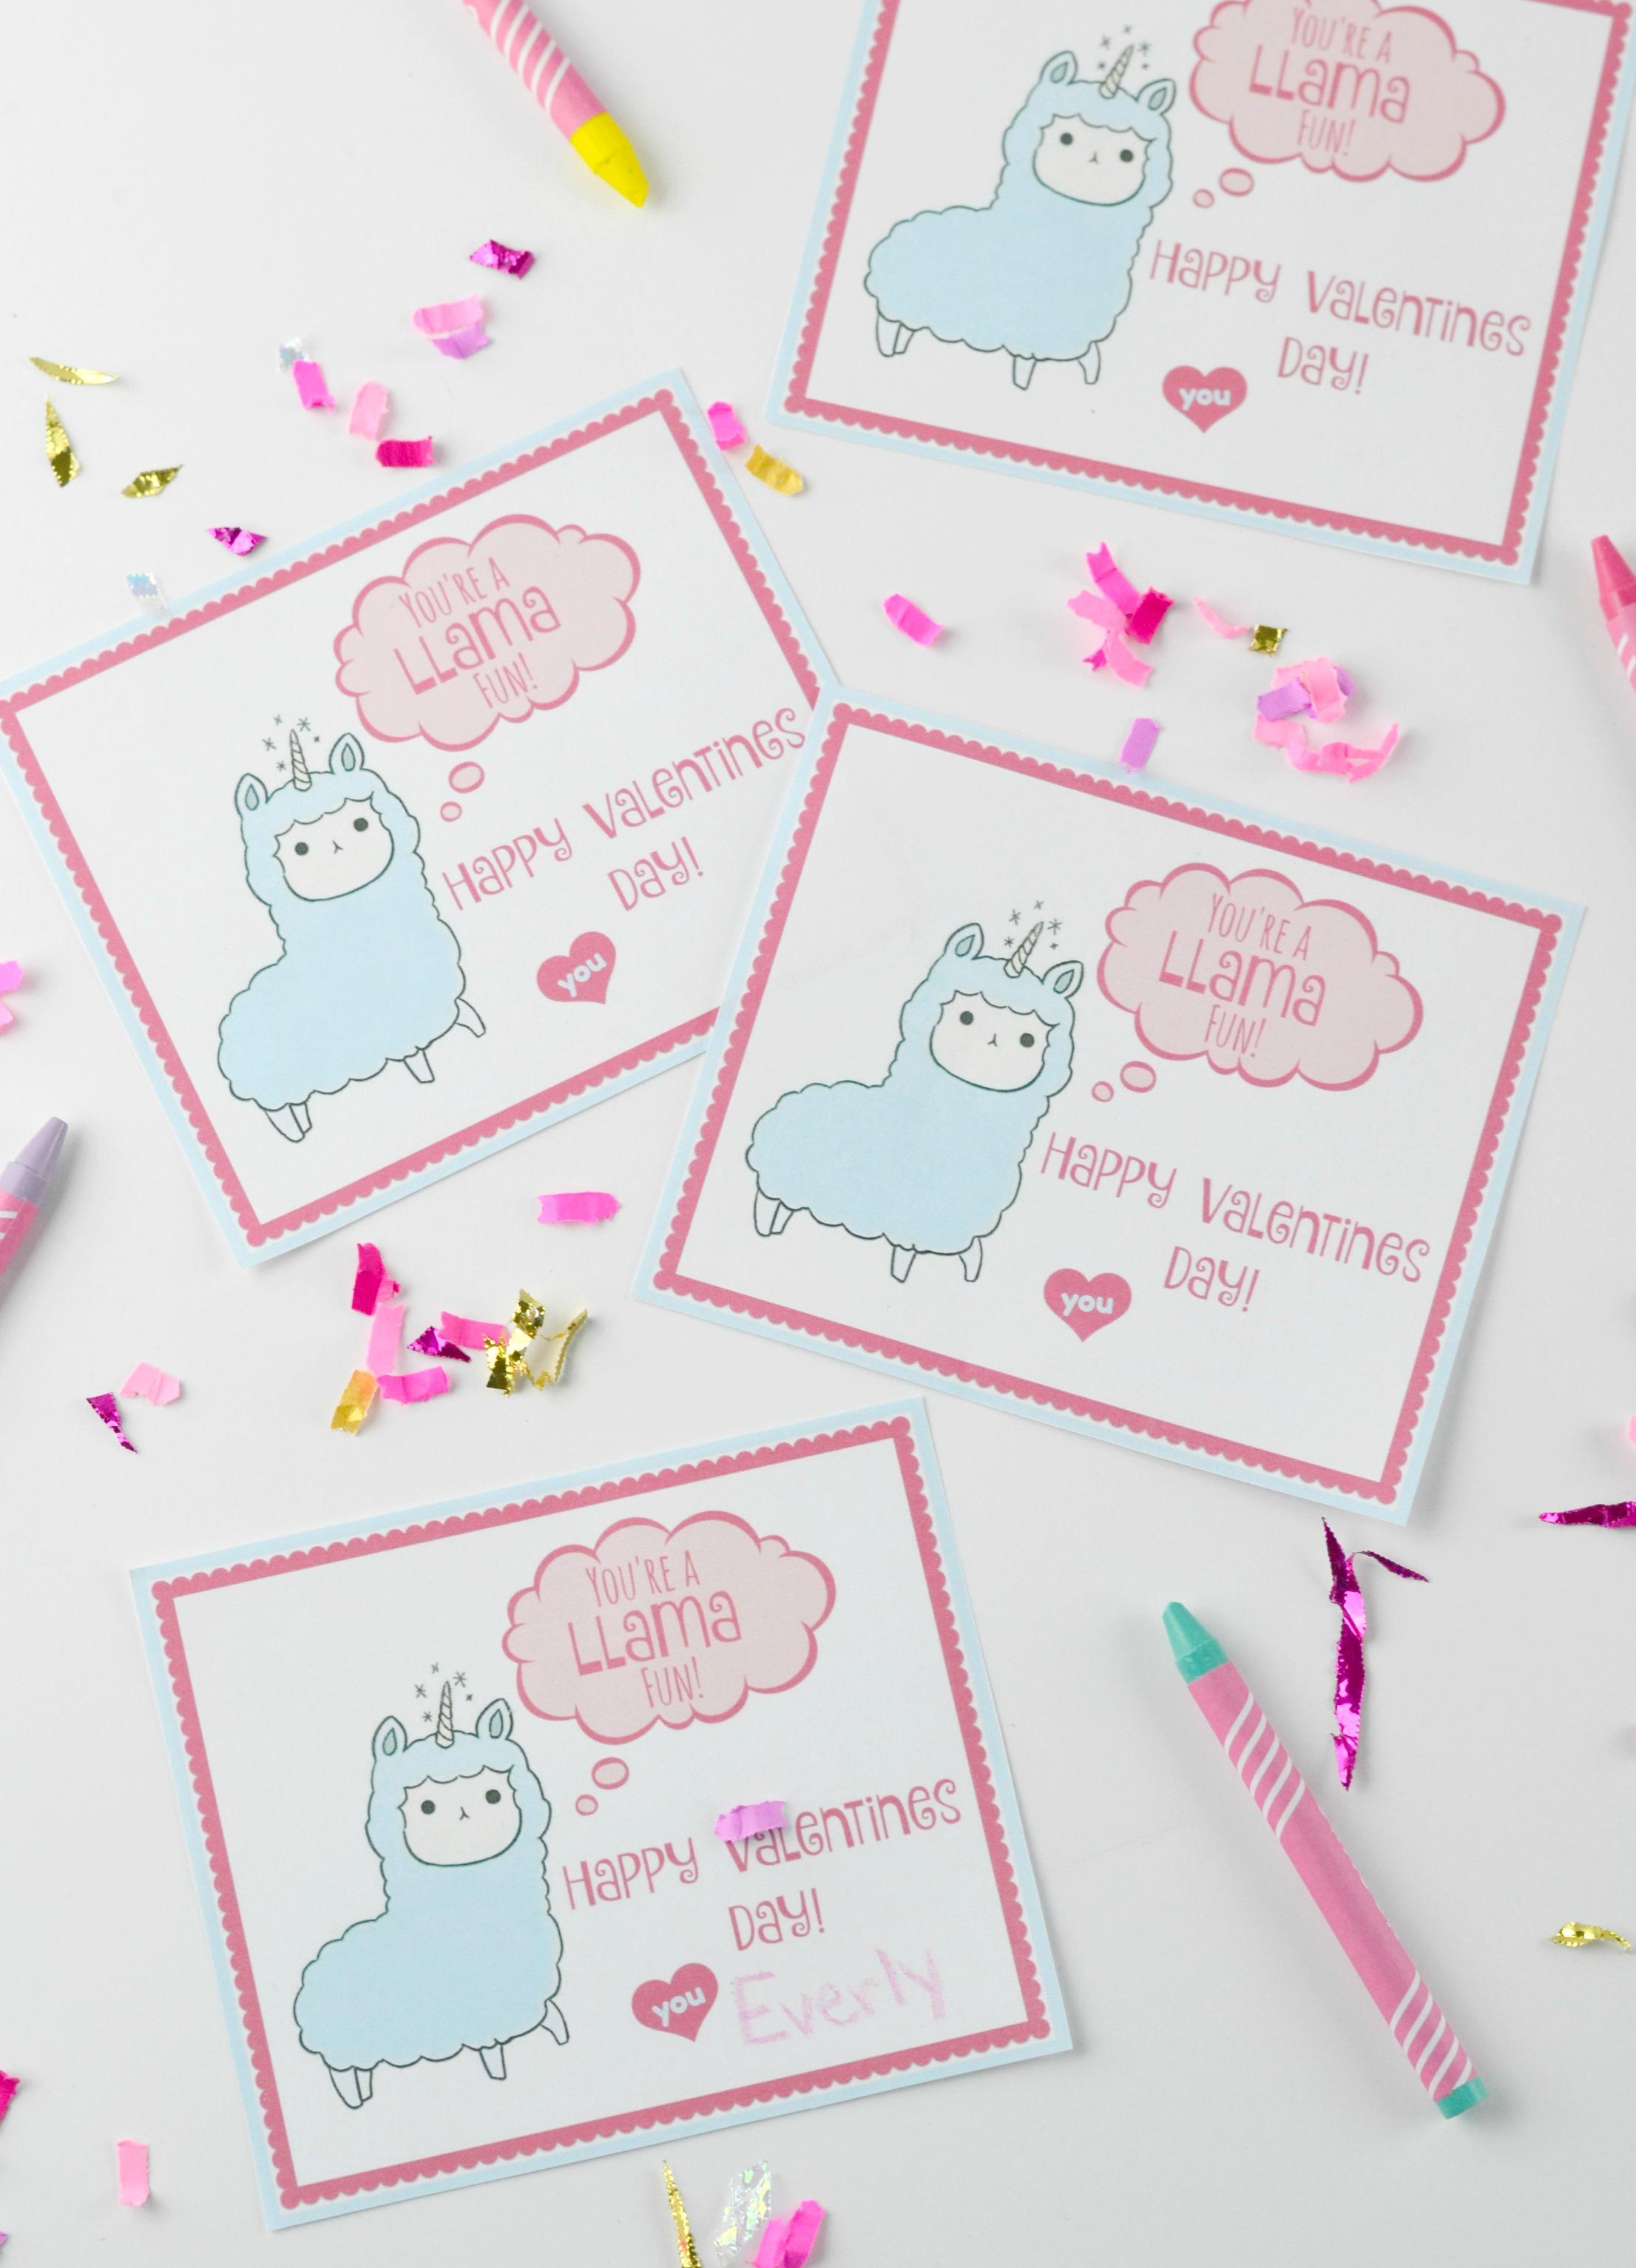 Valentines Day Card For Kids With Free Printable Houston Mommy And